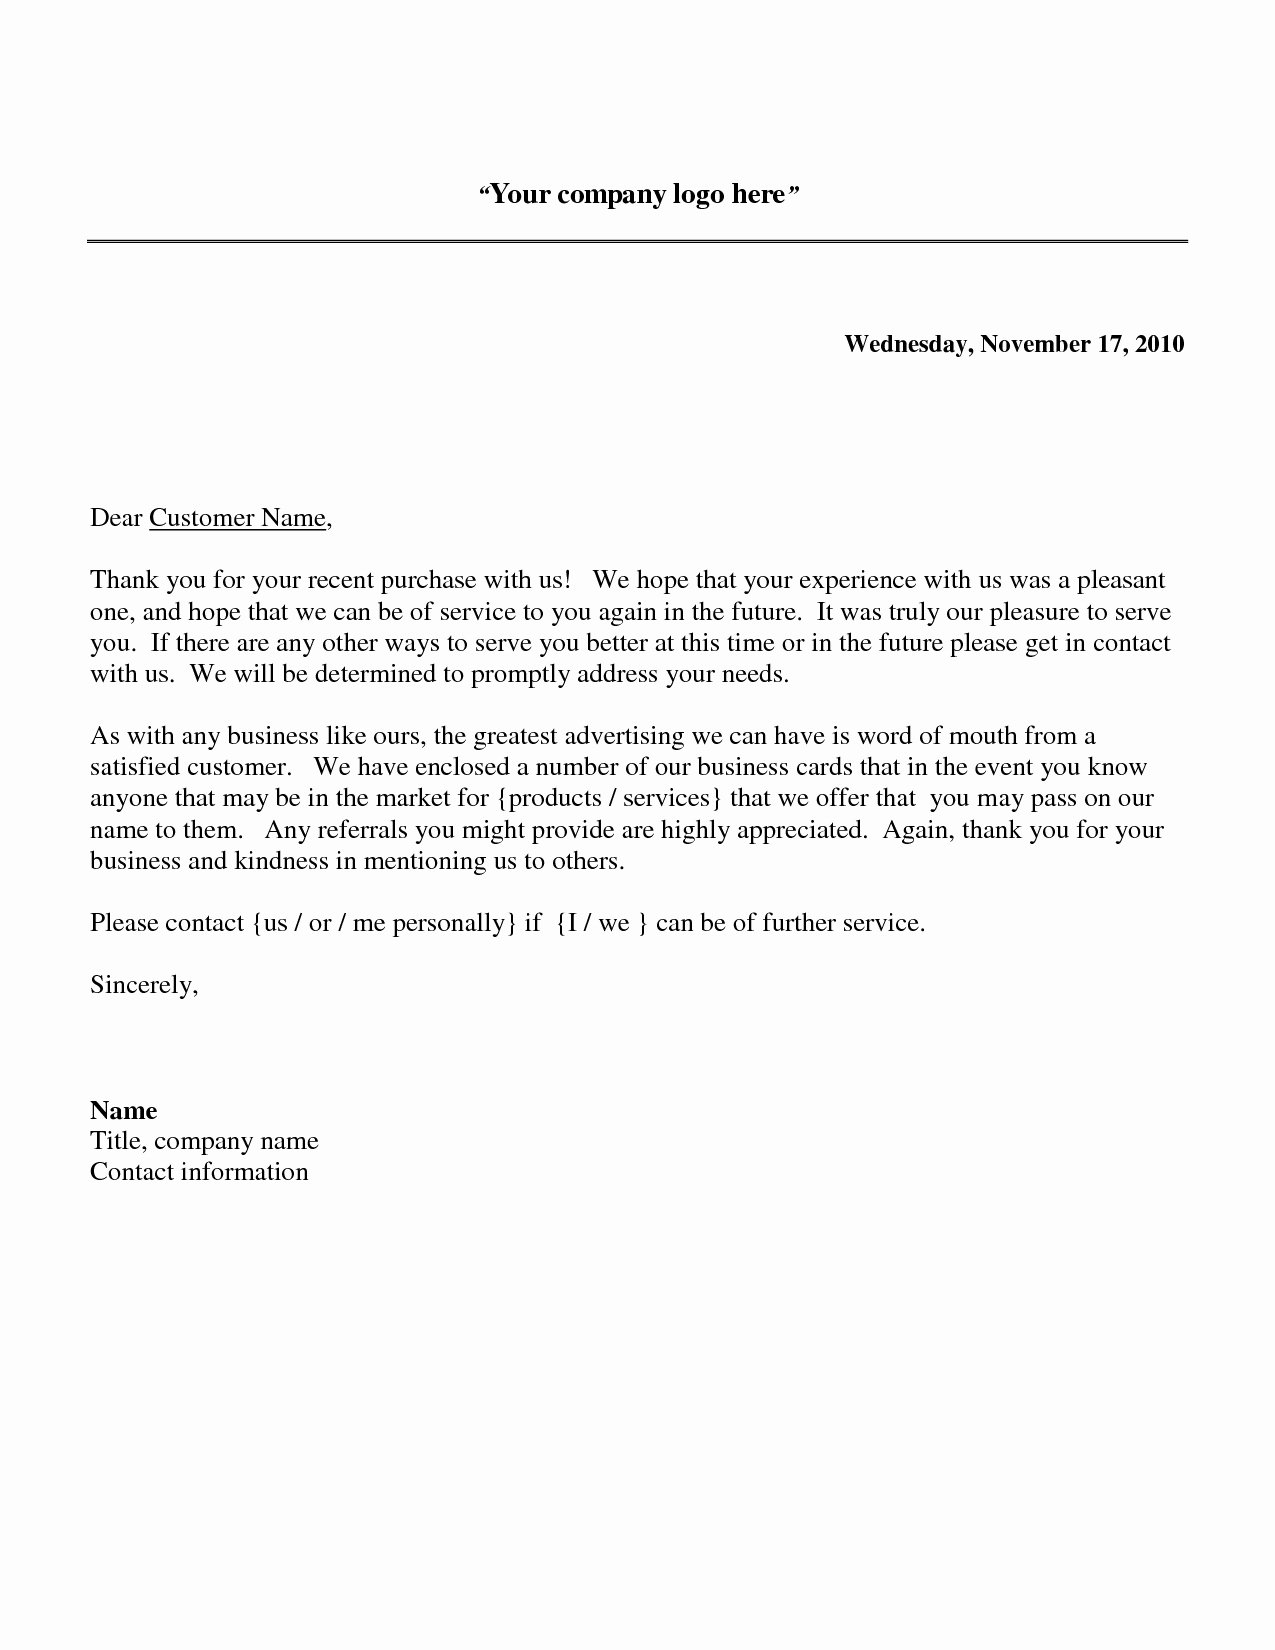 Thank You Letter Business Template Inspirational Business Thank You Letter to Client